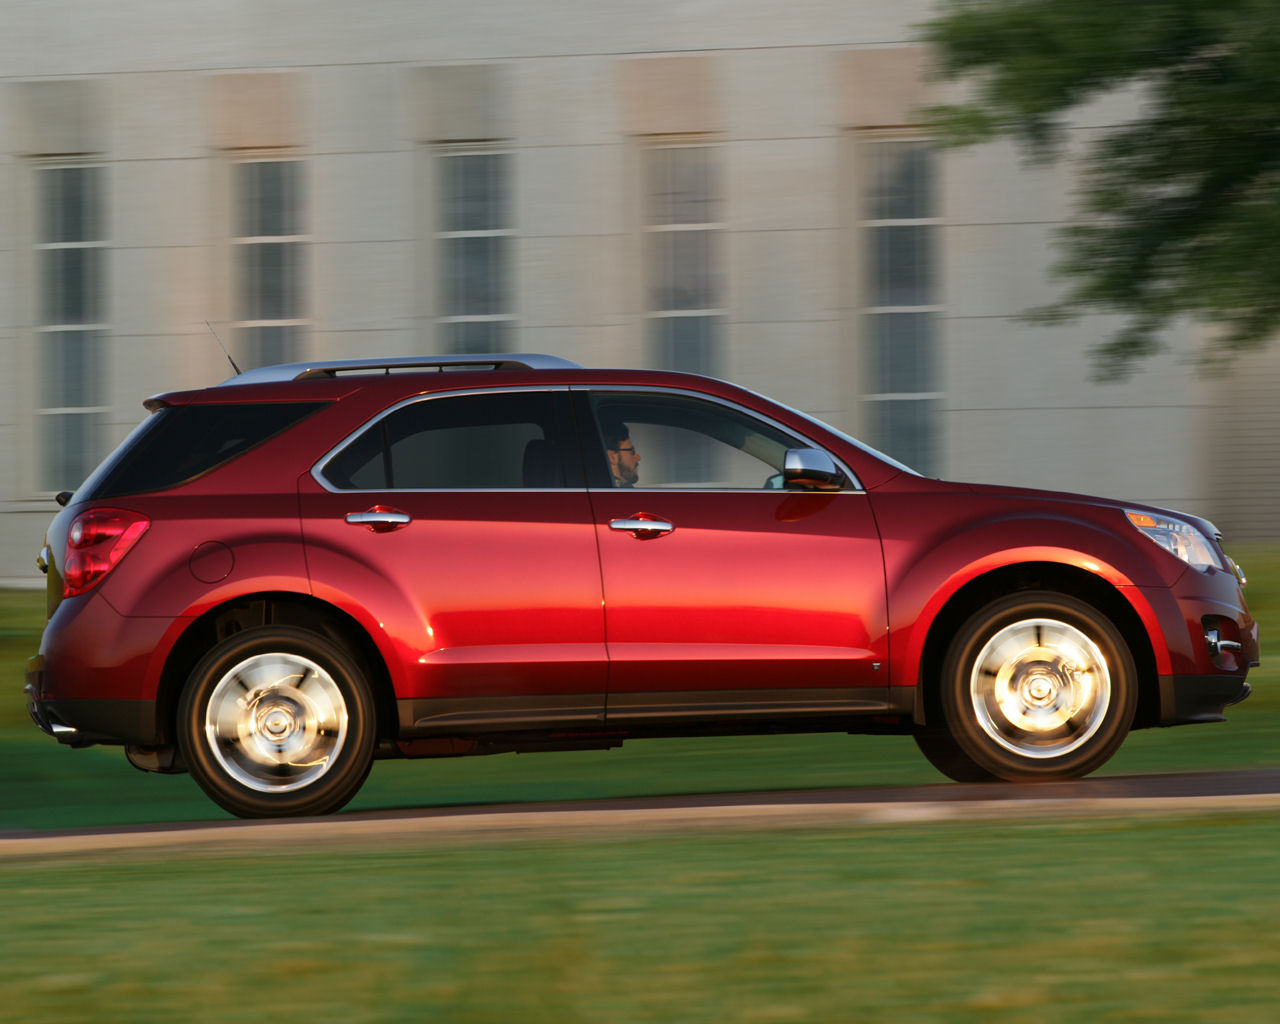 2012 Chevrolet Equinox Side (View 5 of 6)